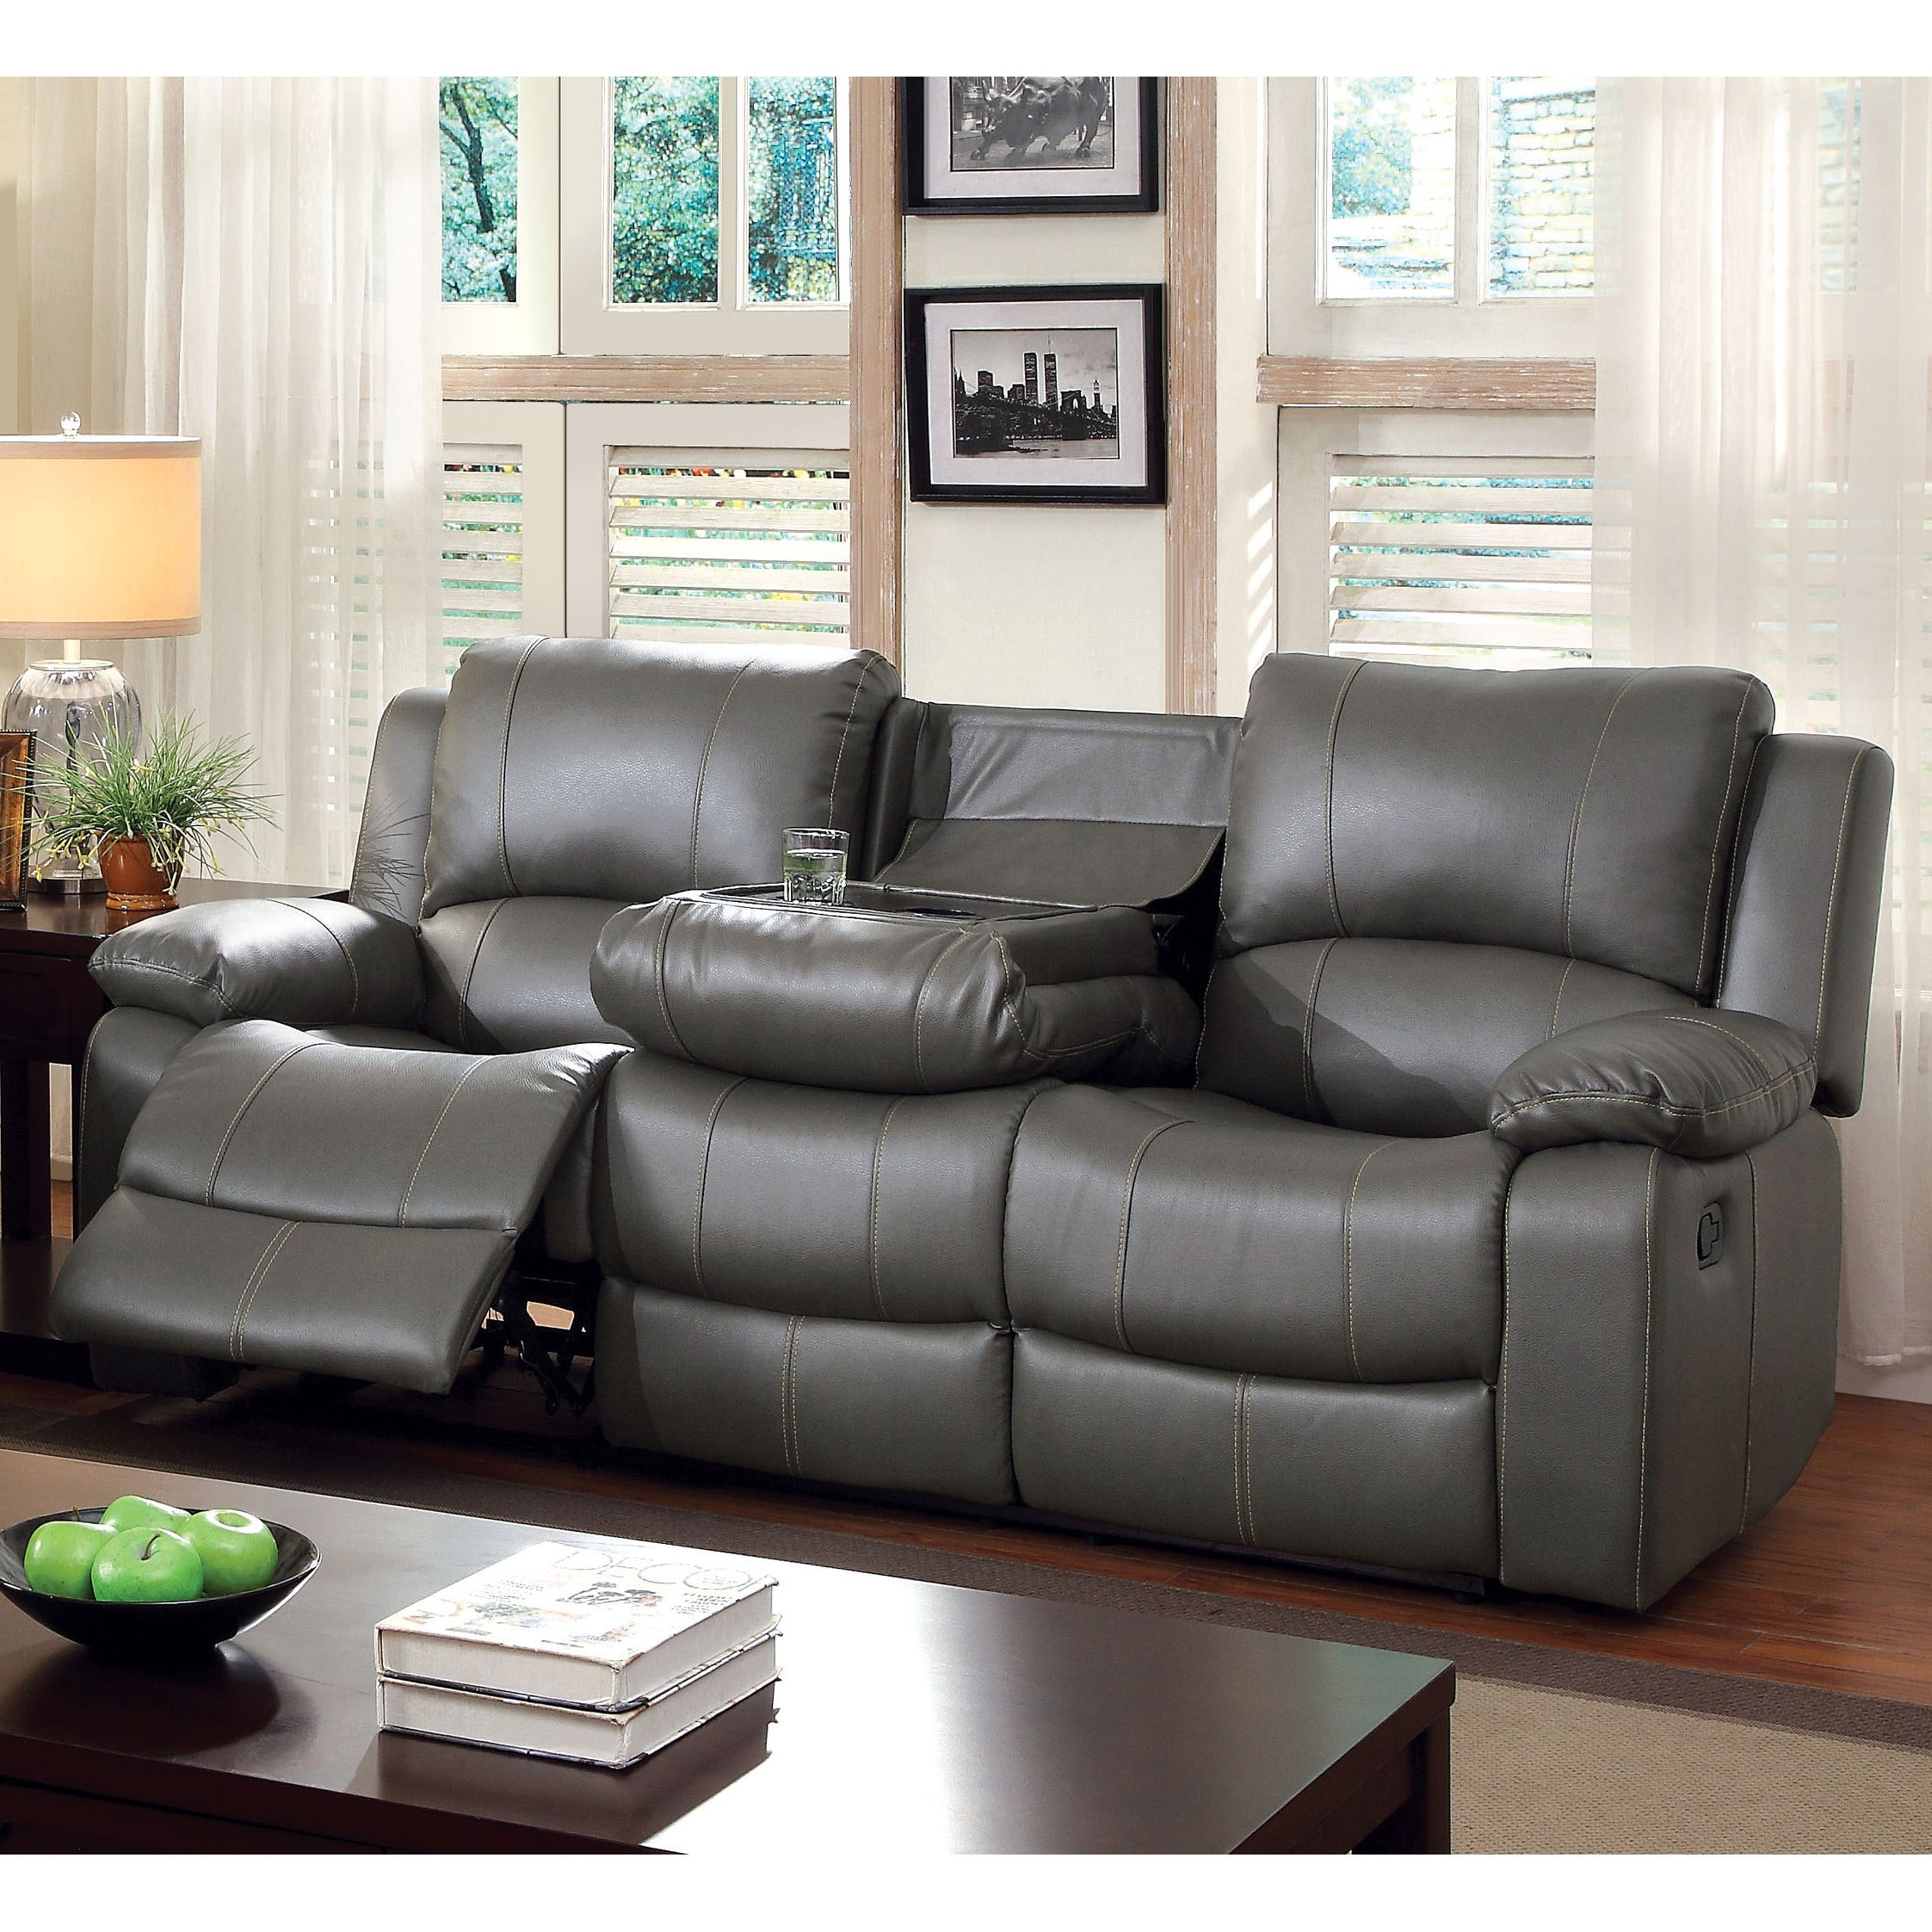 Wide And Expansive This Bonded Leather Sofa Features An Inviting  # Muebles Requinables